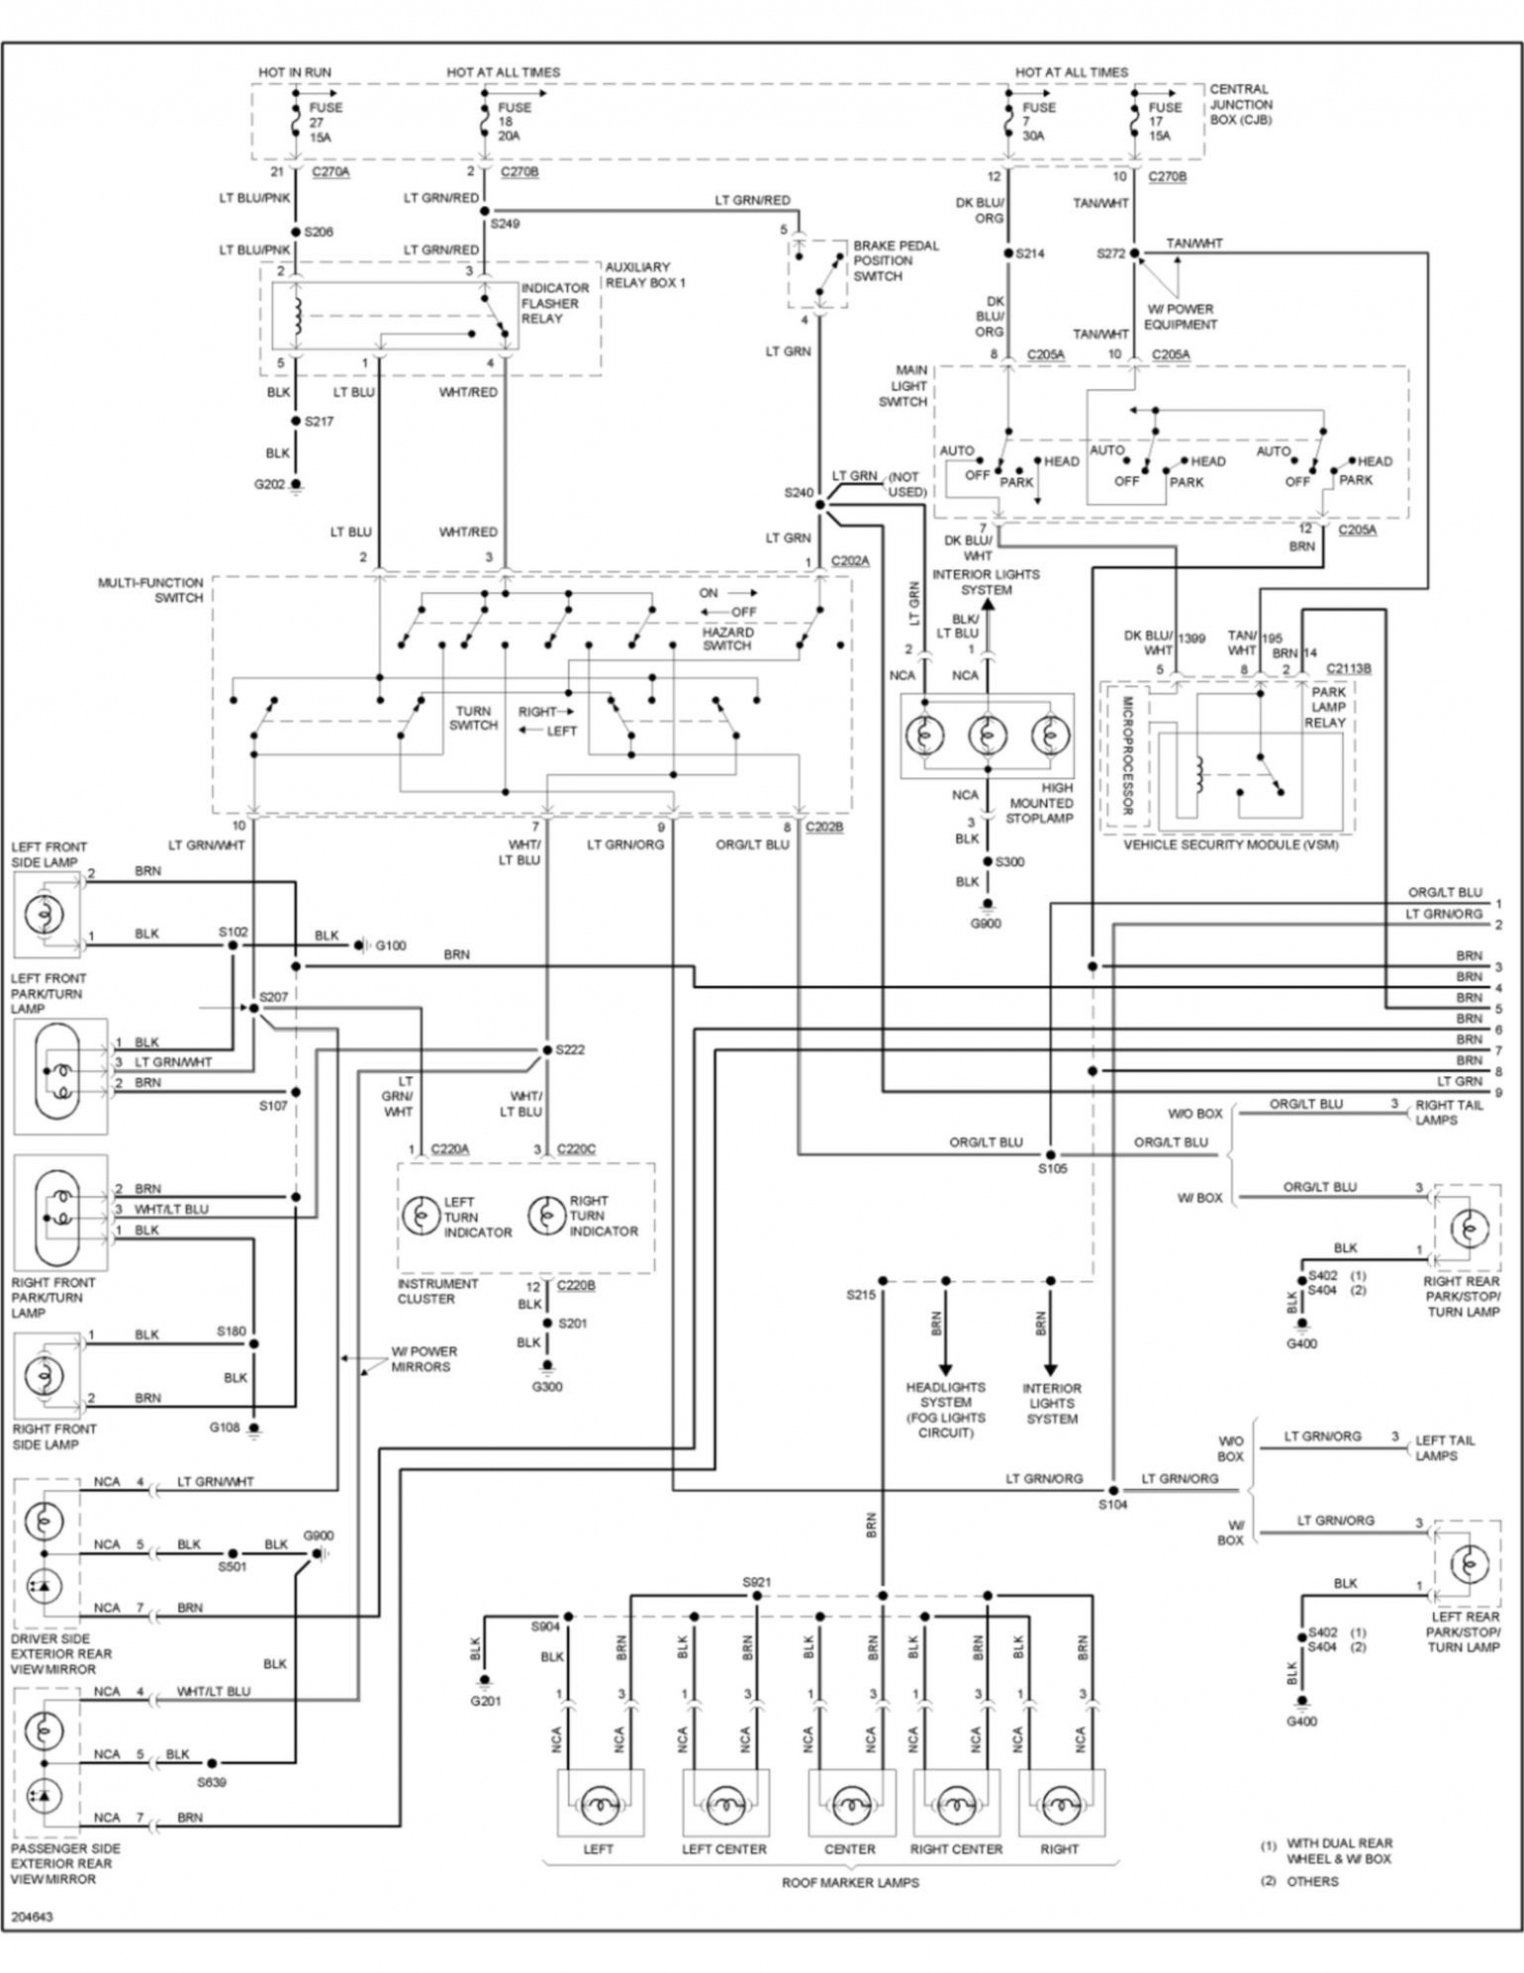 Wiring Diagram Au Falcon Refrence Ford F150 Trailer Wiring Harness - Ford F250 Trailer Wiring Diagram